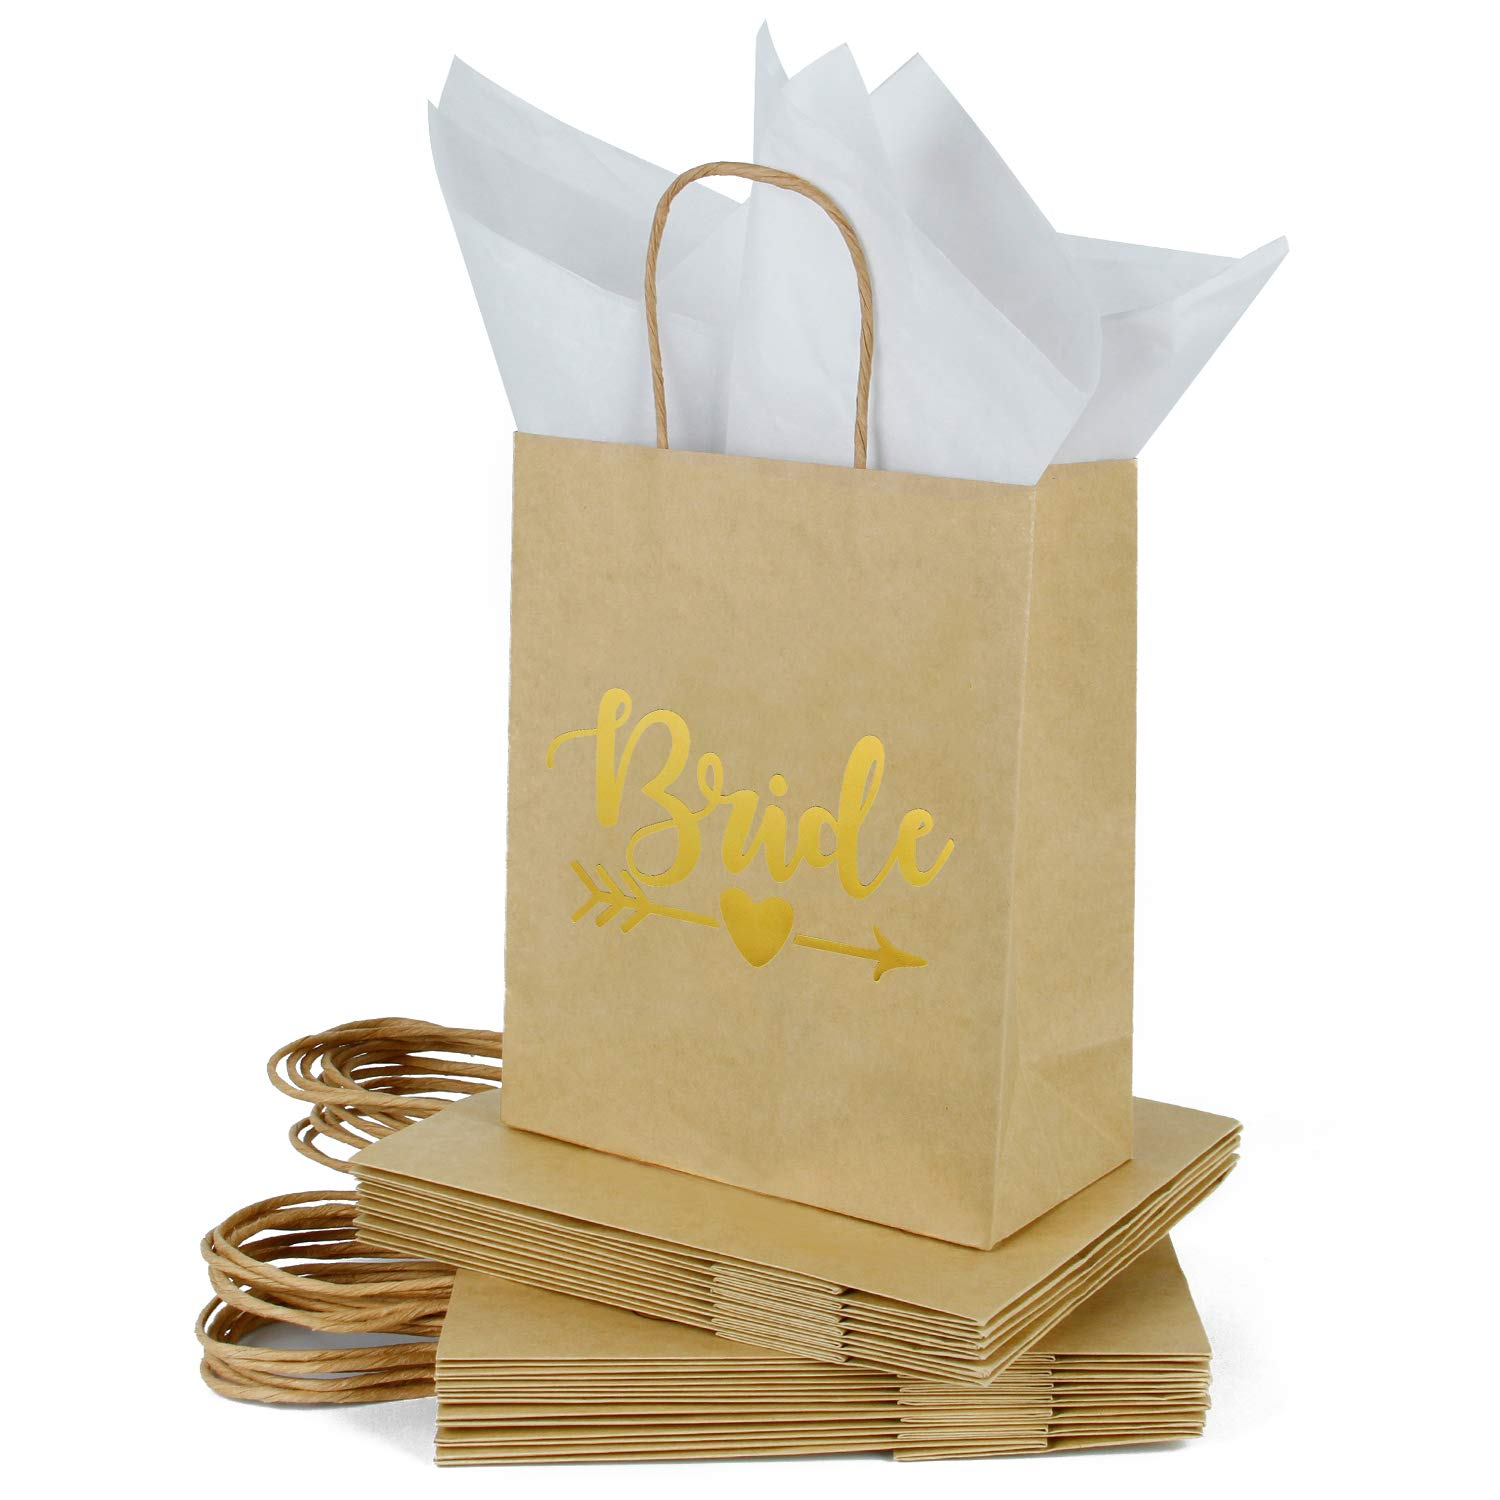 Loveinside Medium Kraft Gift Bags -Bride Gold Foil Brown Paper Gift Bag with Tissue Paper - Wedding,Party Favor,Bridal Shower Gifts-12Pack -8'' X 4'' X 10''